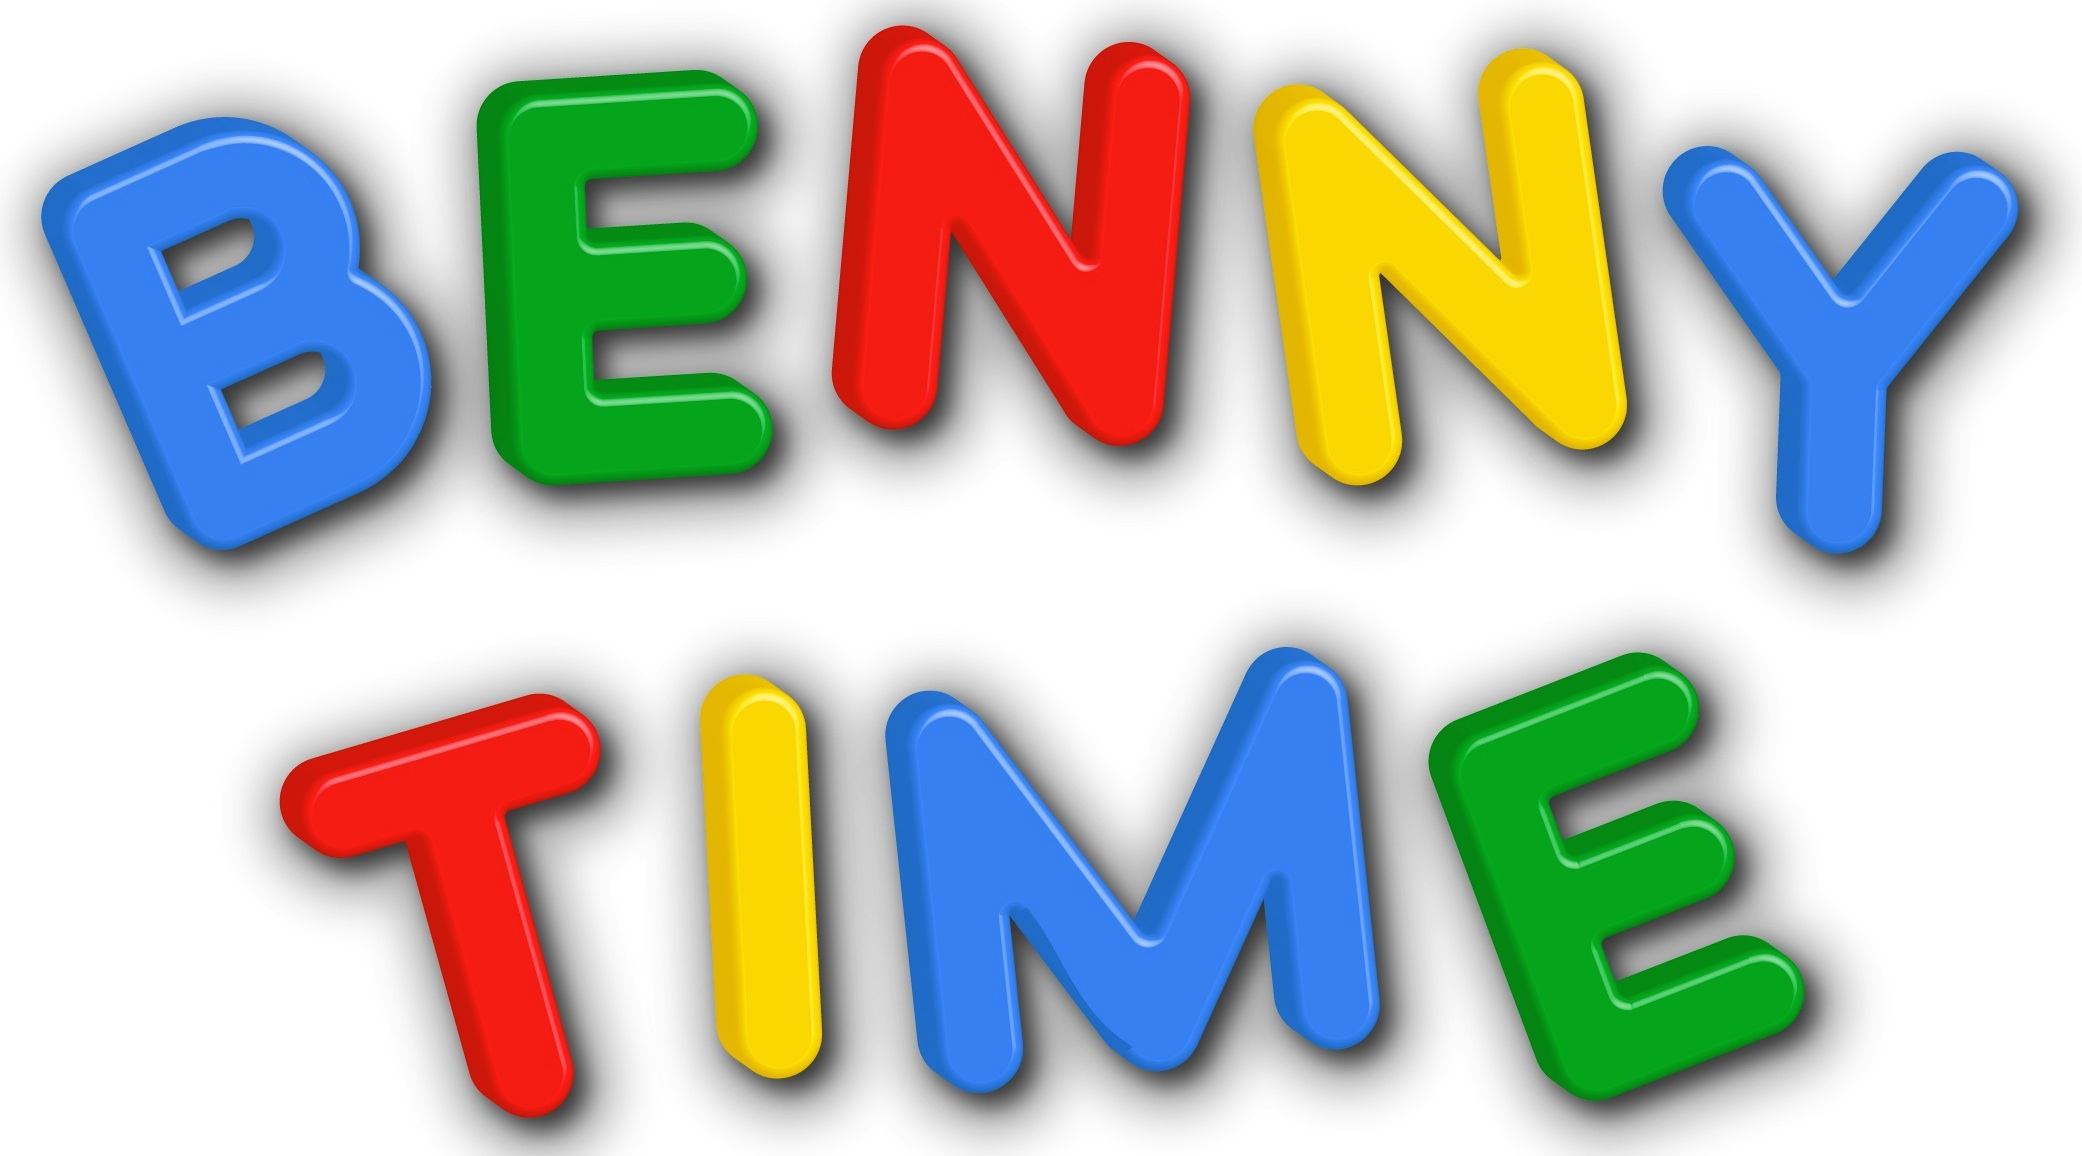 benny time kids msuic